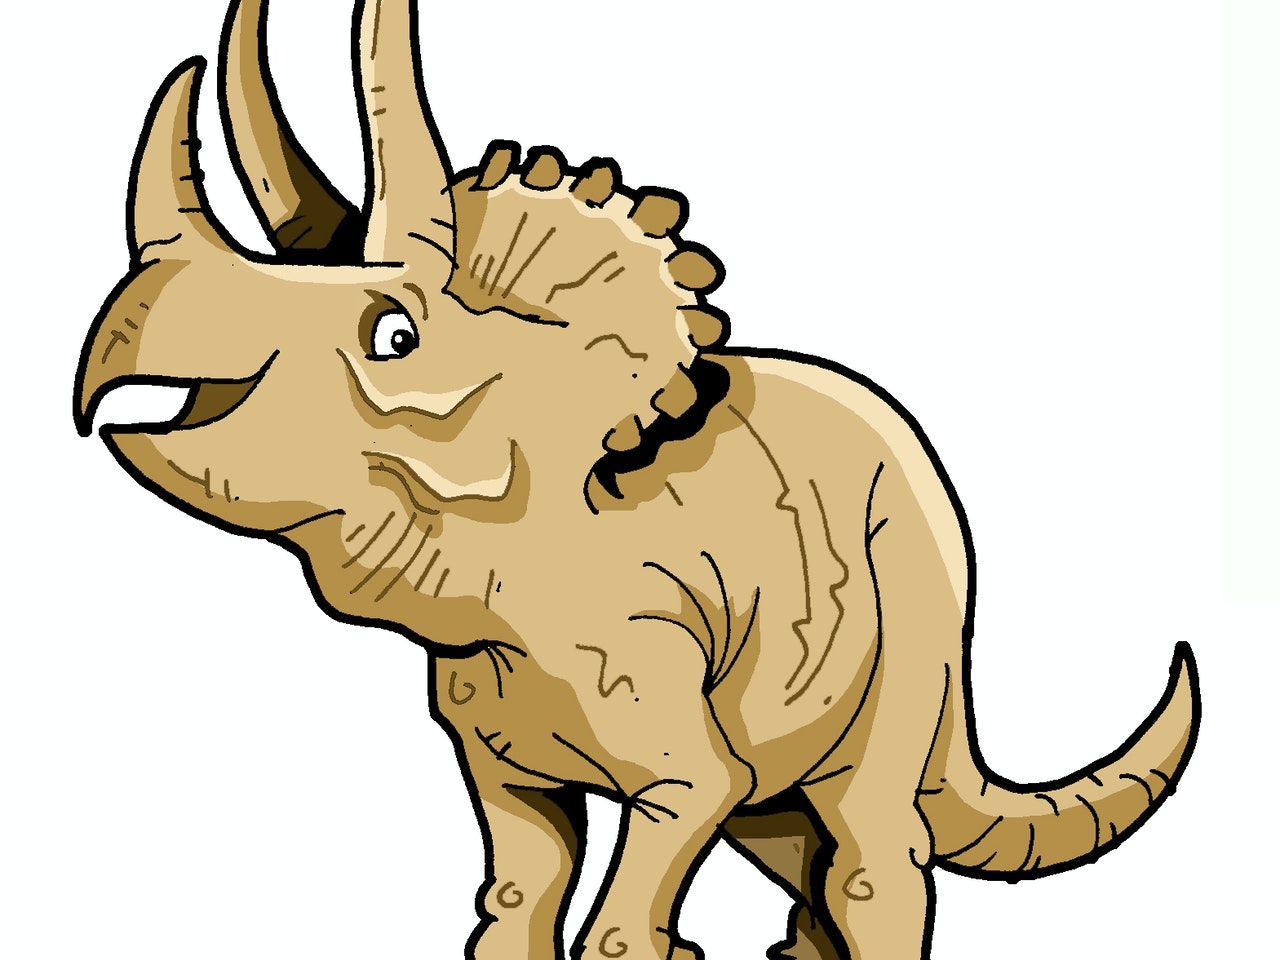 Cool friendly funny Funky Happy manga anime childrens cartoon comic  dinosaur triceratops prehistoric